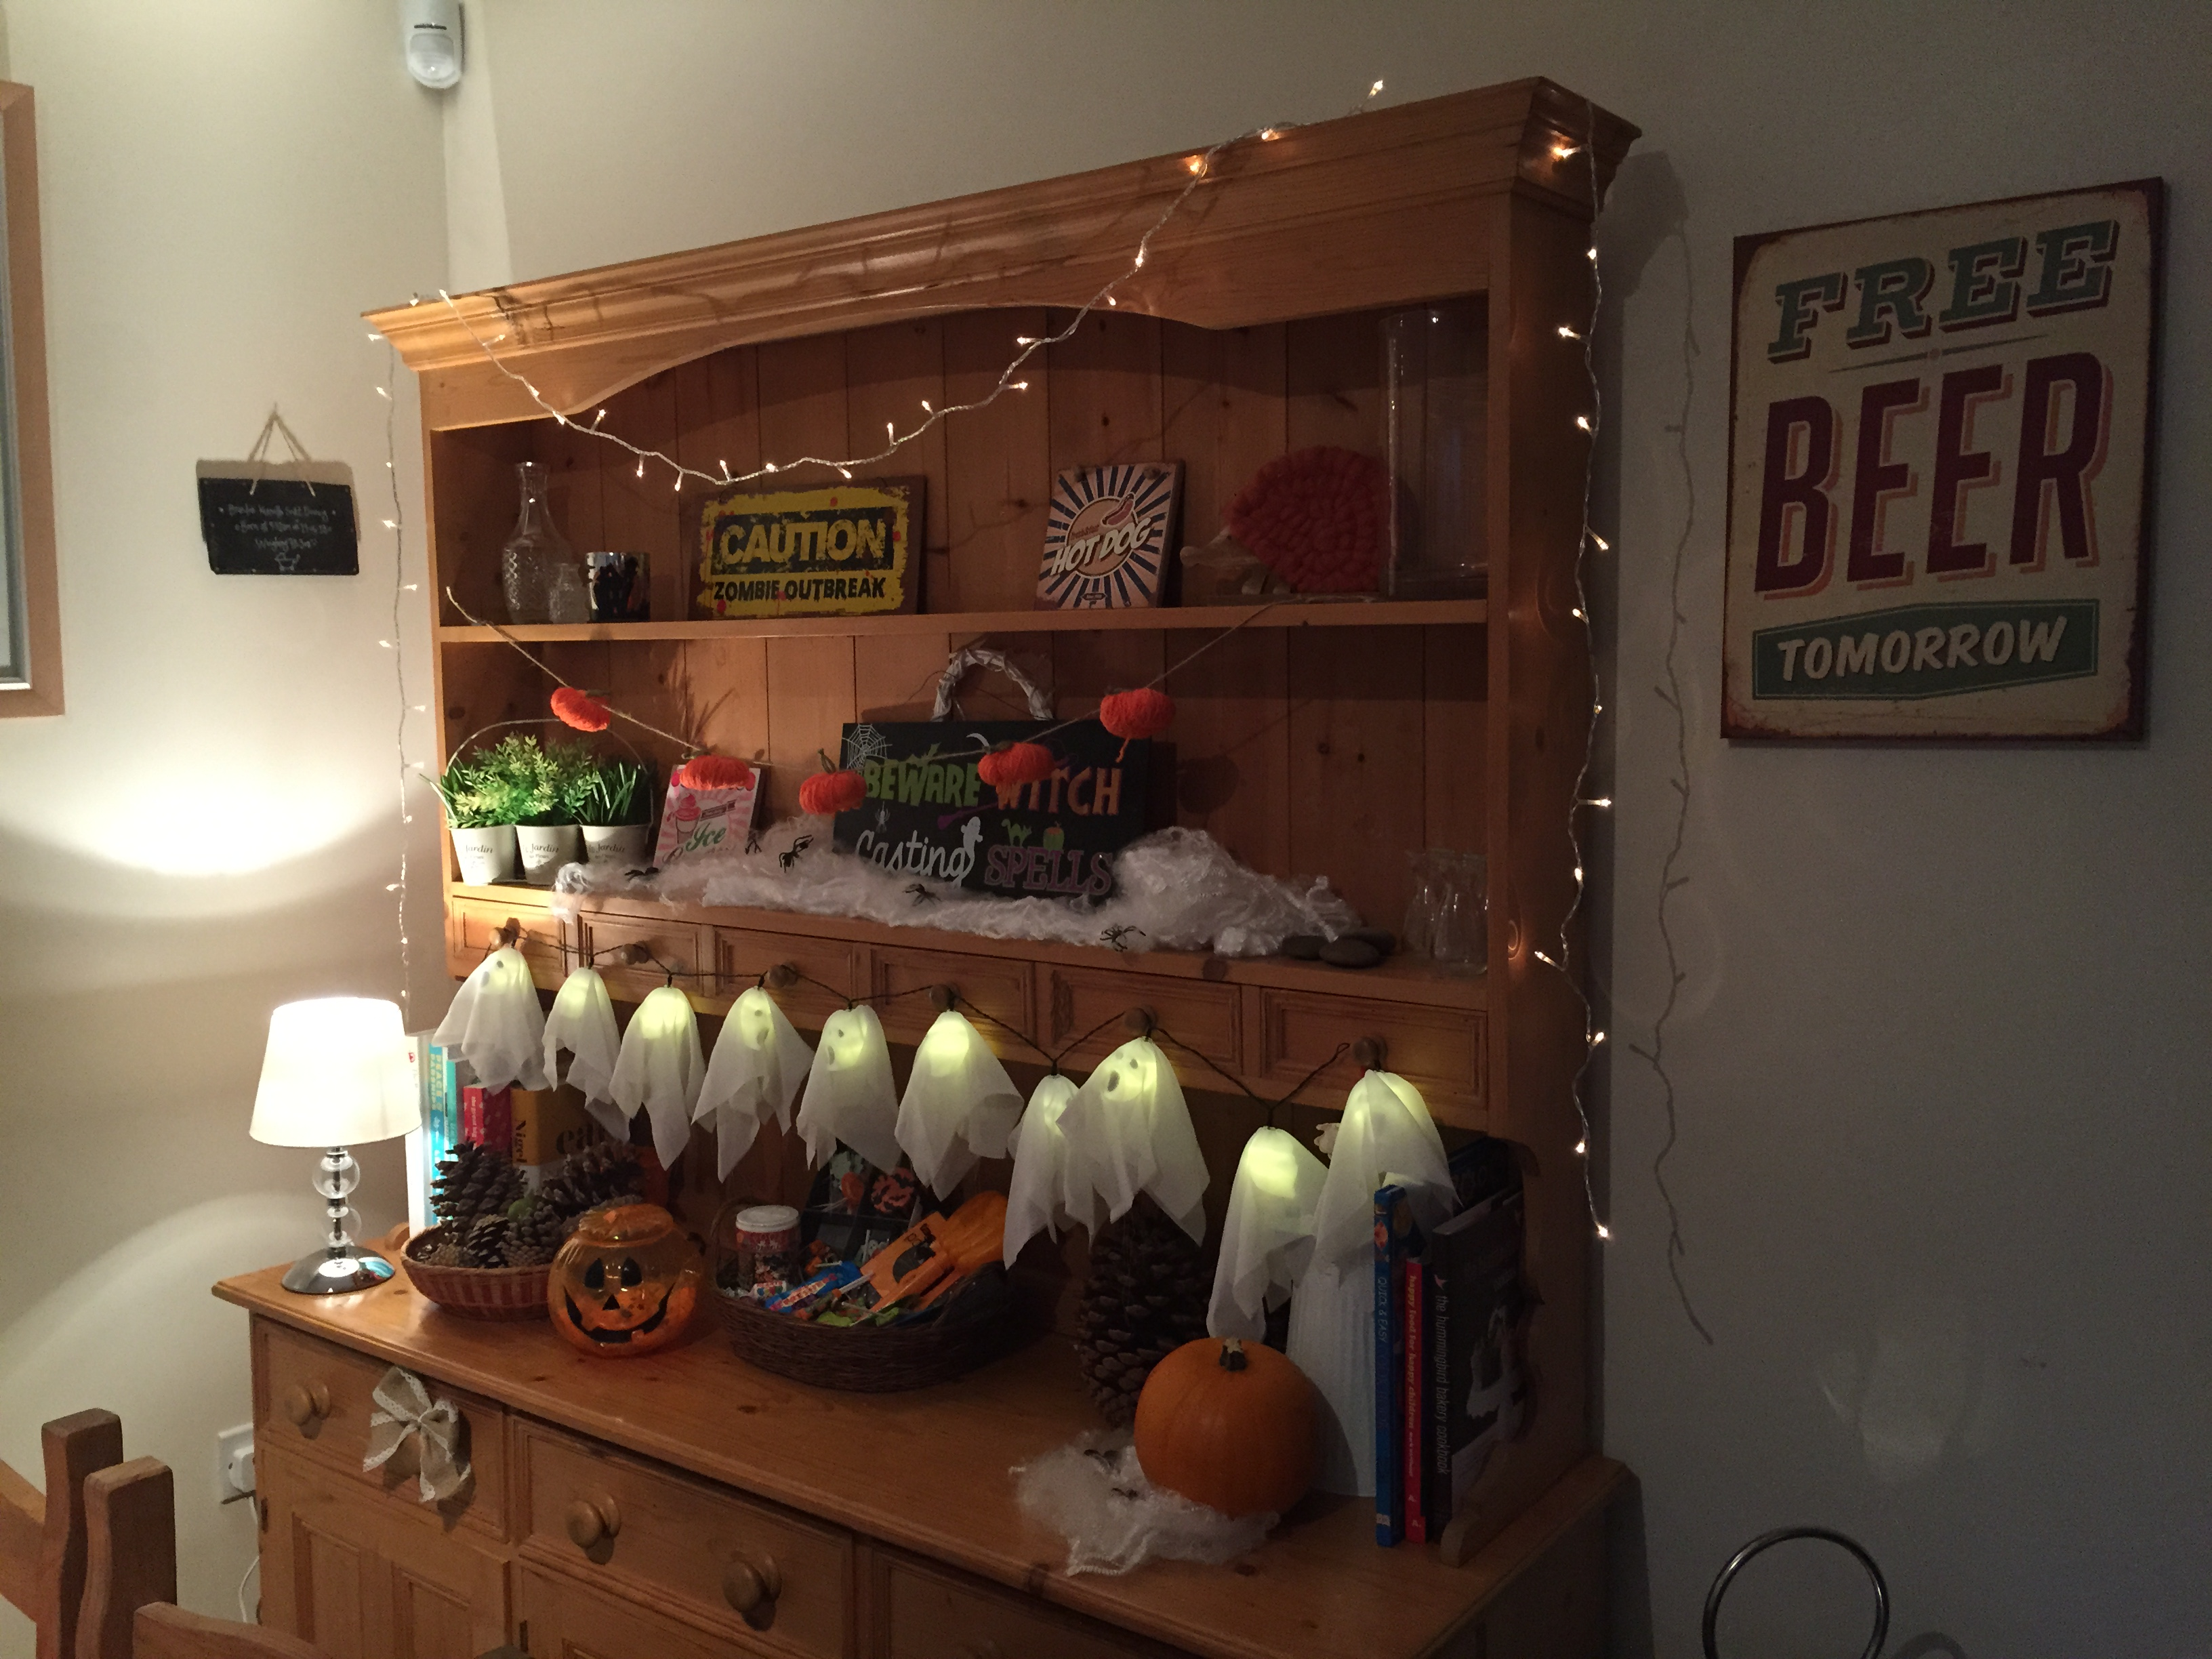 Home bargains bathroom cabinets - Halloween Home Bargains Ghost Led Lights Review Indoor Use Autumn Winter Halloween At Home Bargains